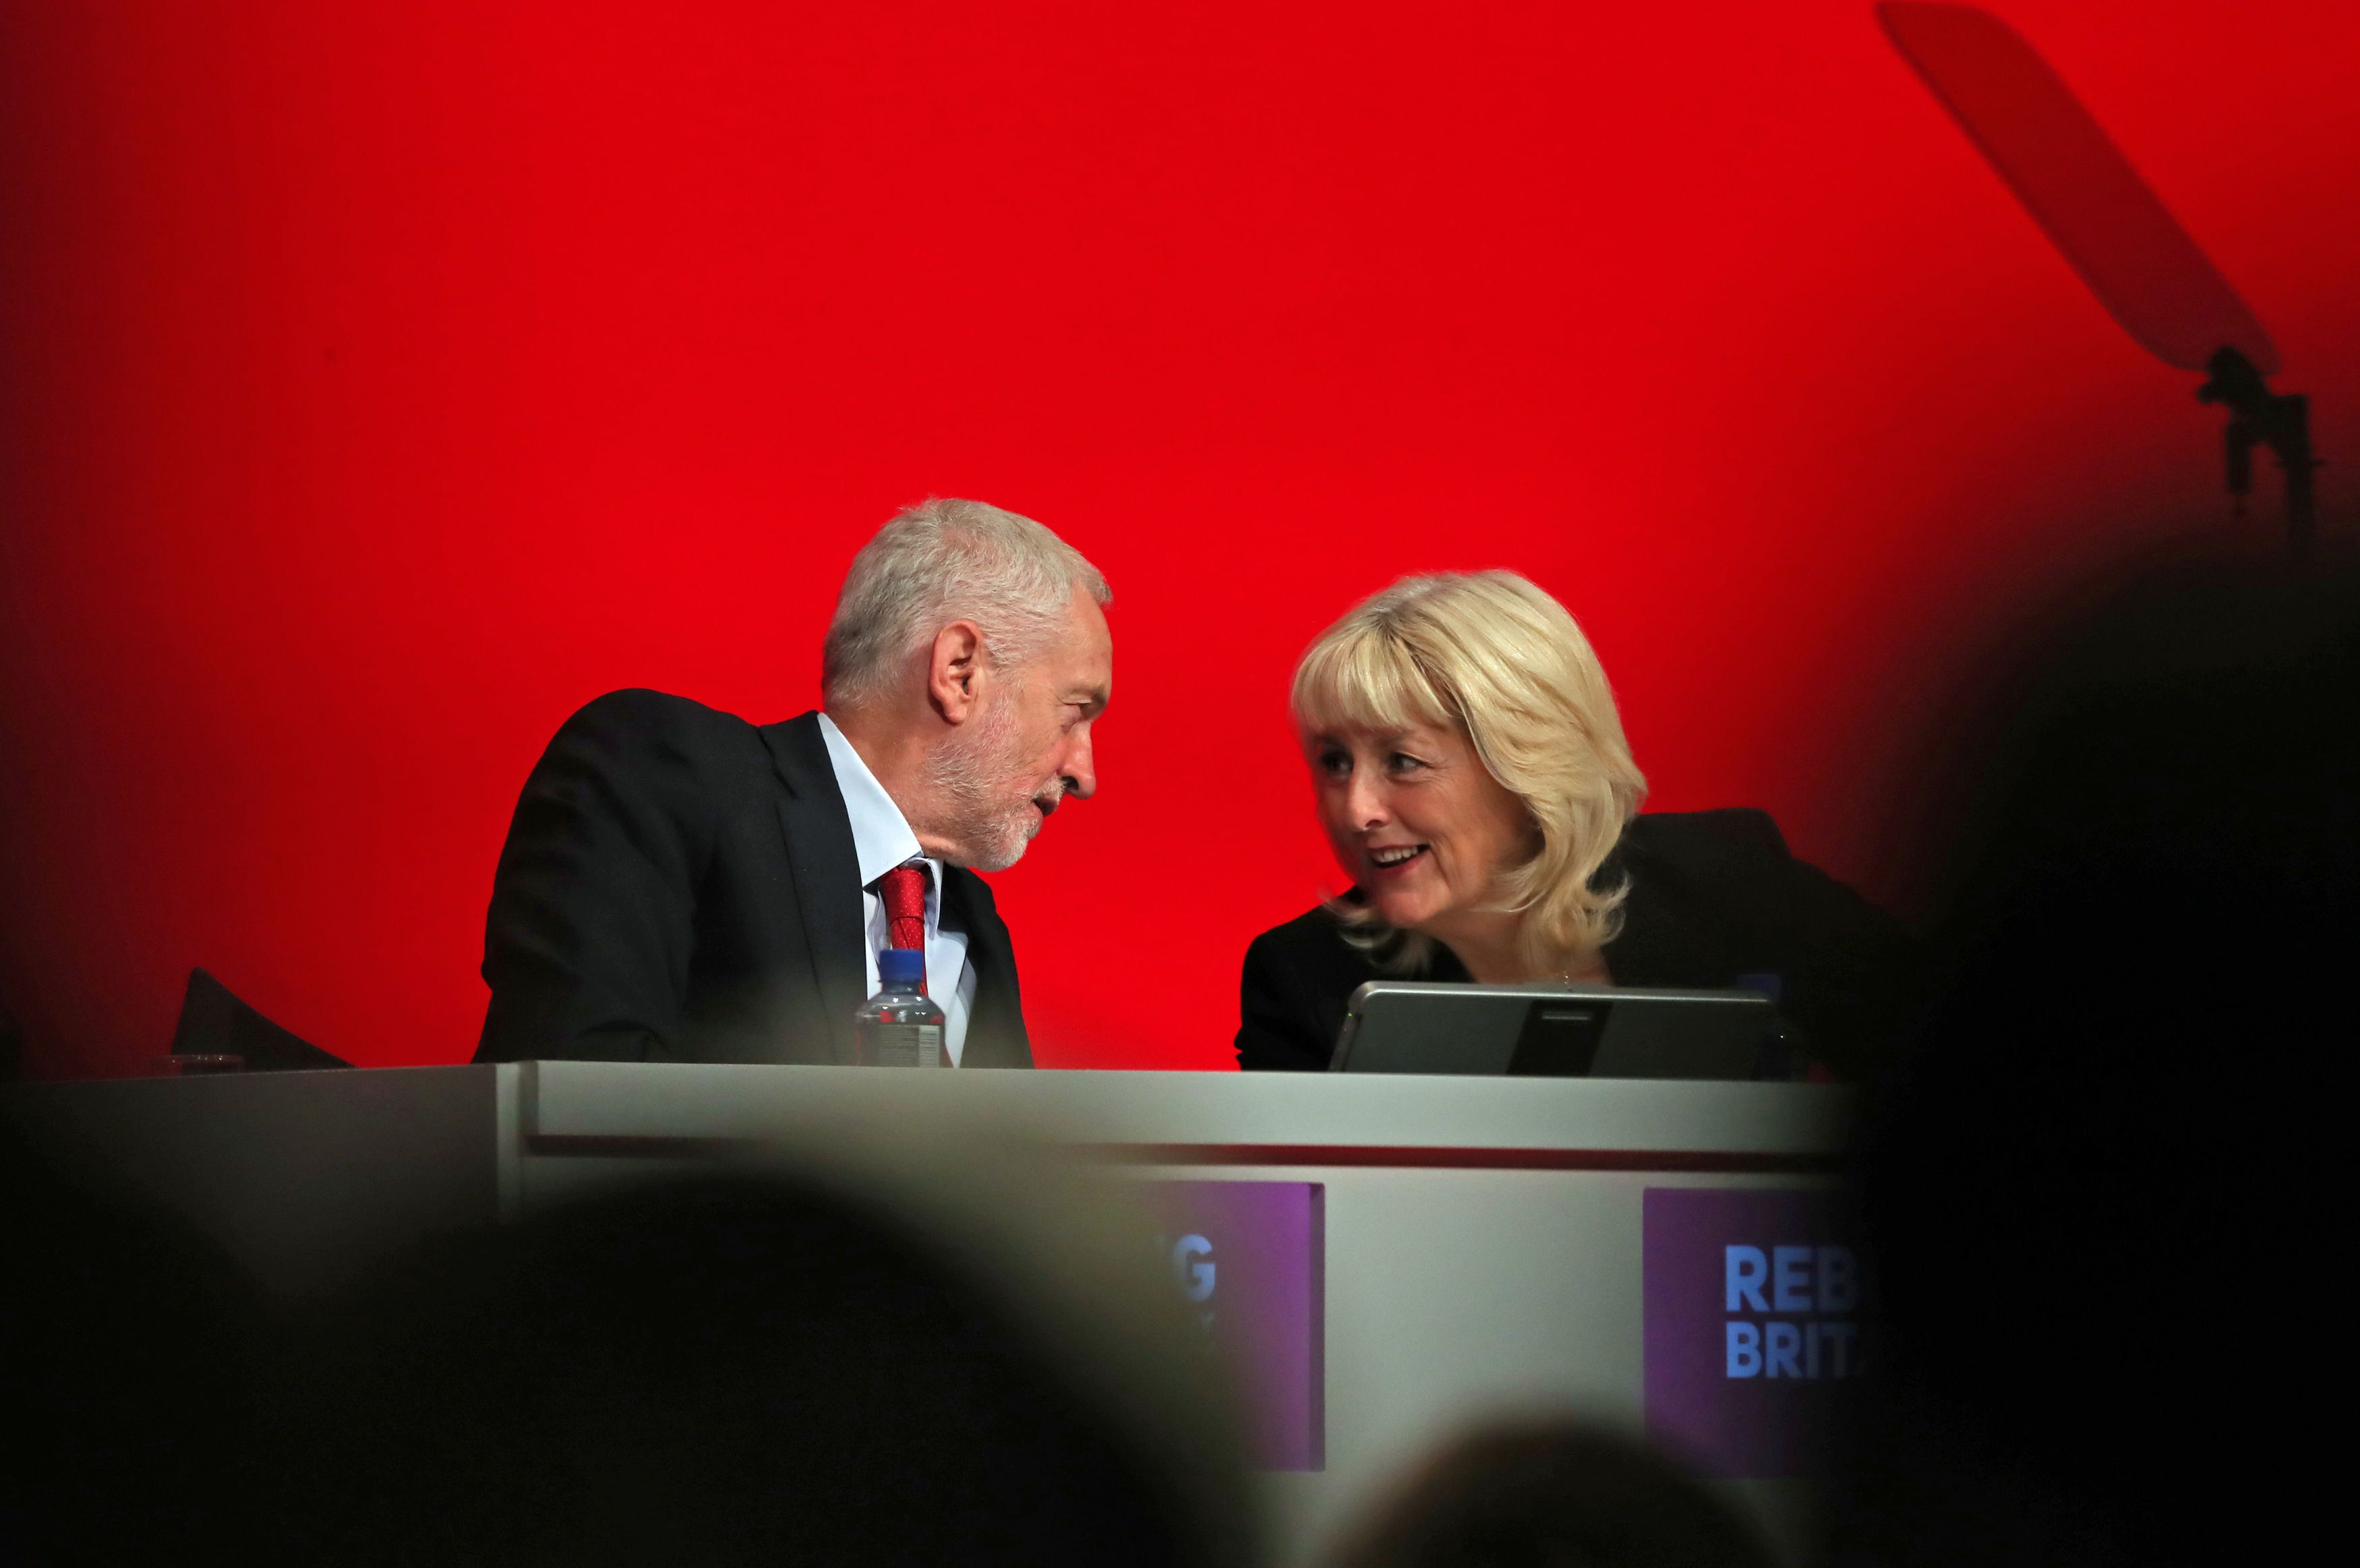 Jeremy Corbyn with Jennie Formby at Labour Party conference in